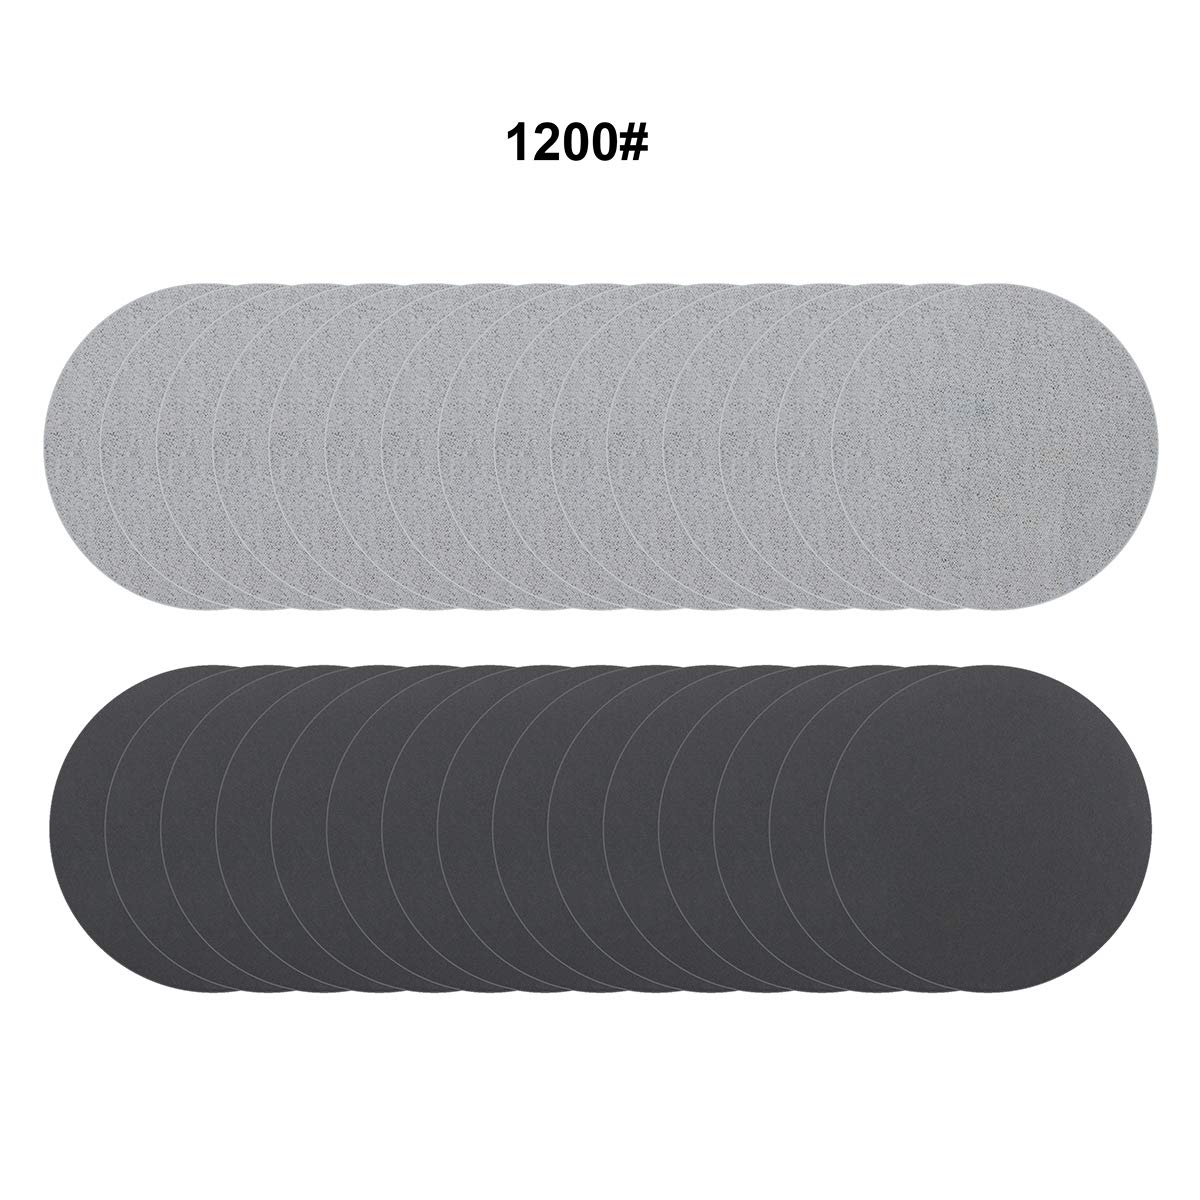 MAXMAN 30PCS 3 Inch Sanding Disc,600 Grit Sandpapers for Drill and Grinder Rotary,Dry /& Wet Grinding Disc Hook and Loop,Abrasive Pads for Wood and Metal